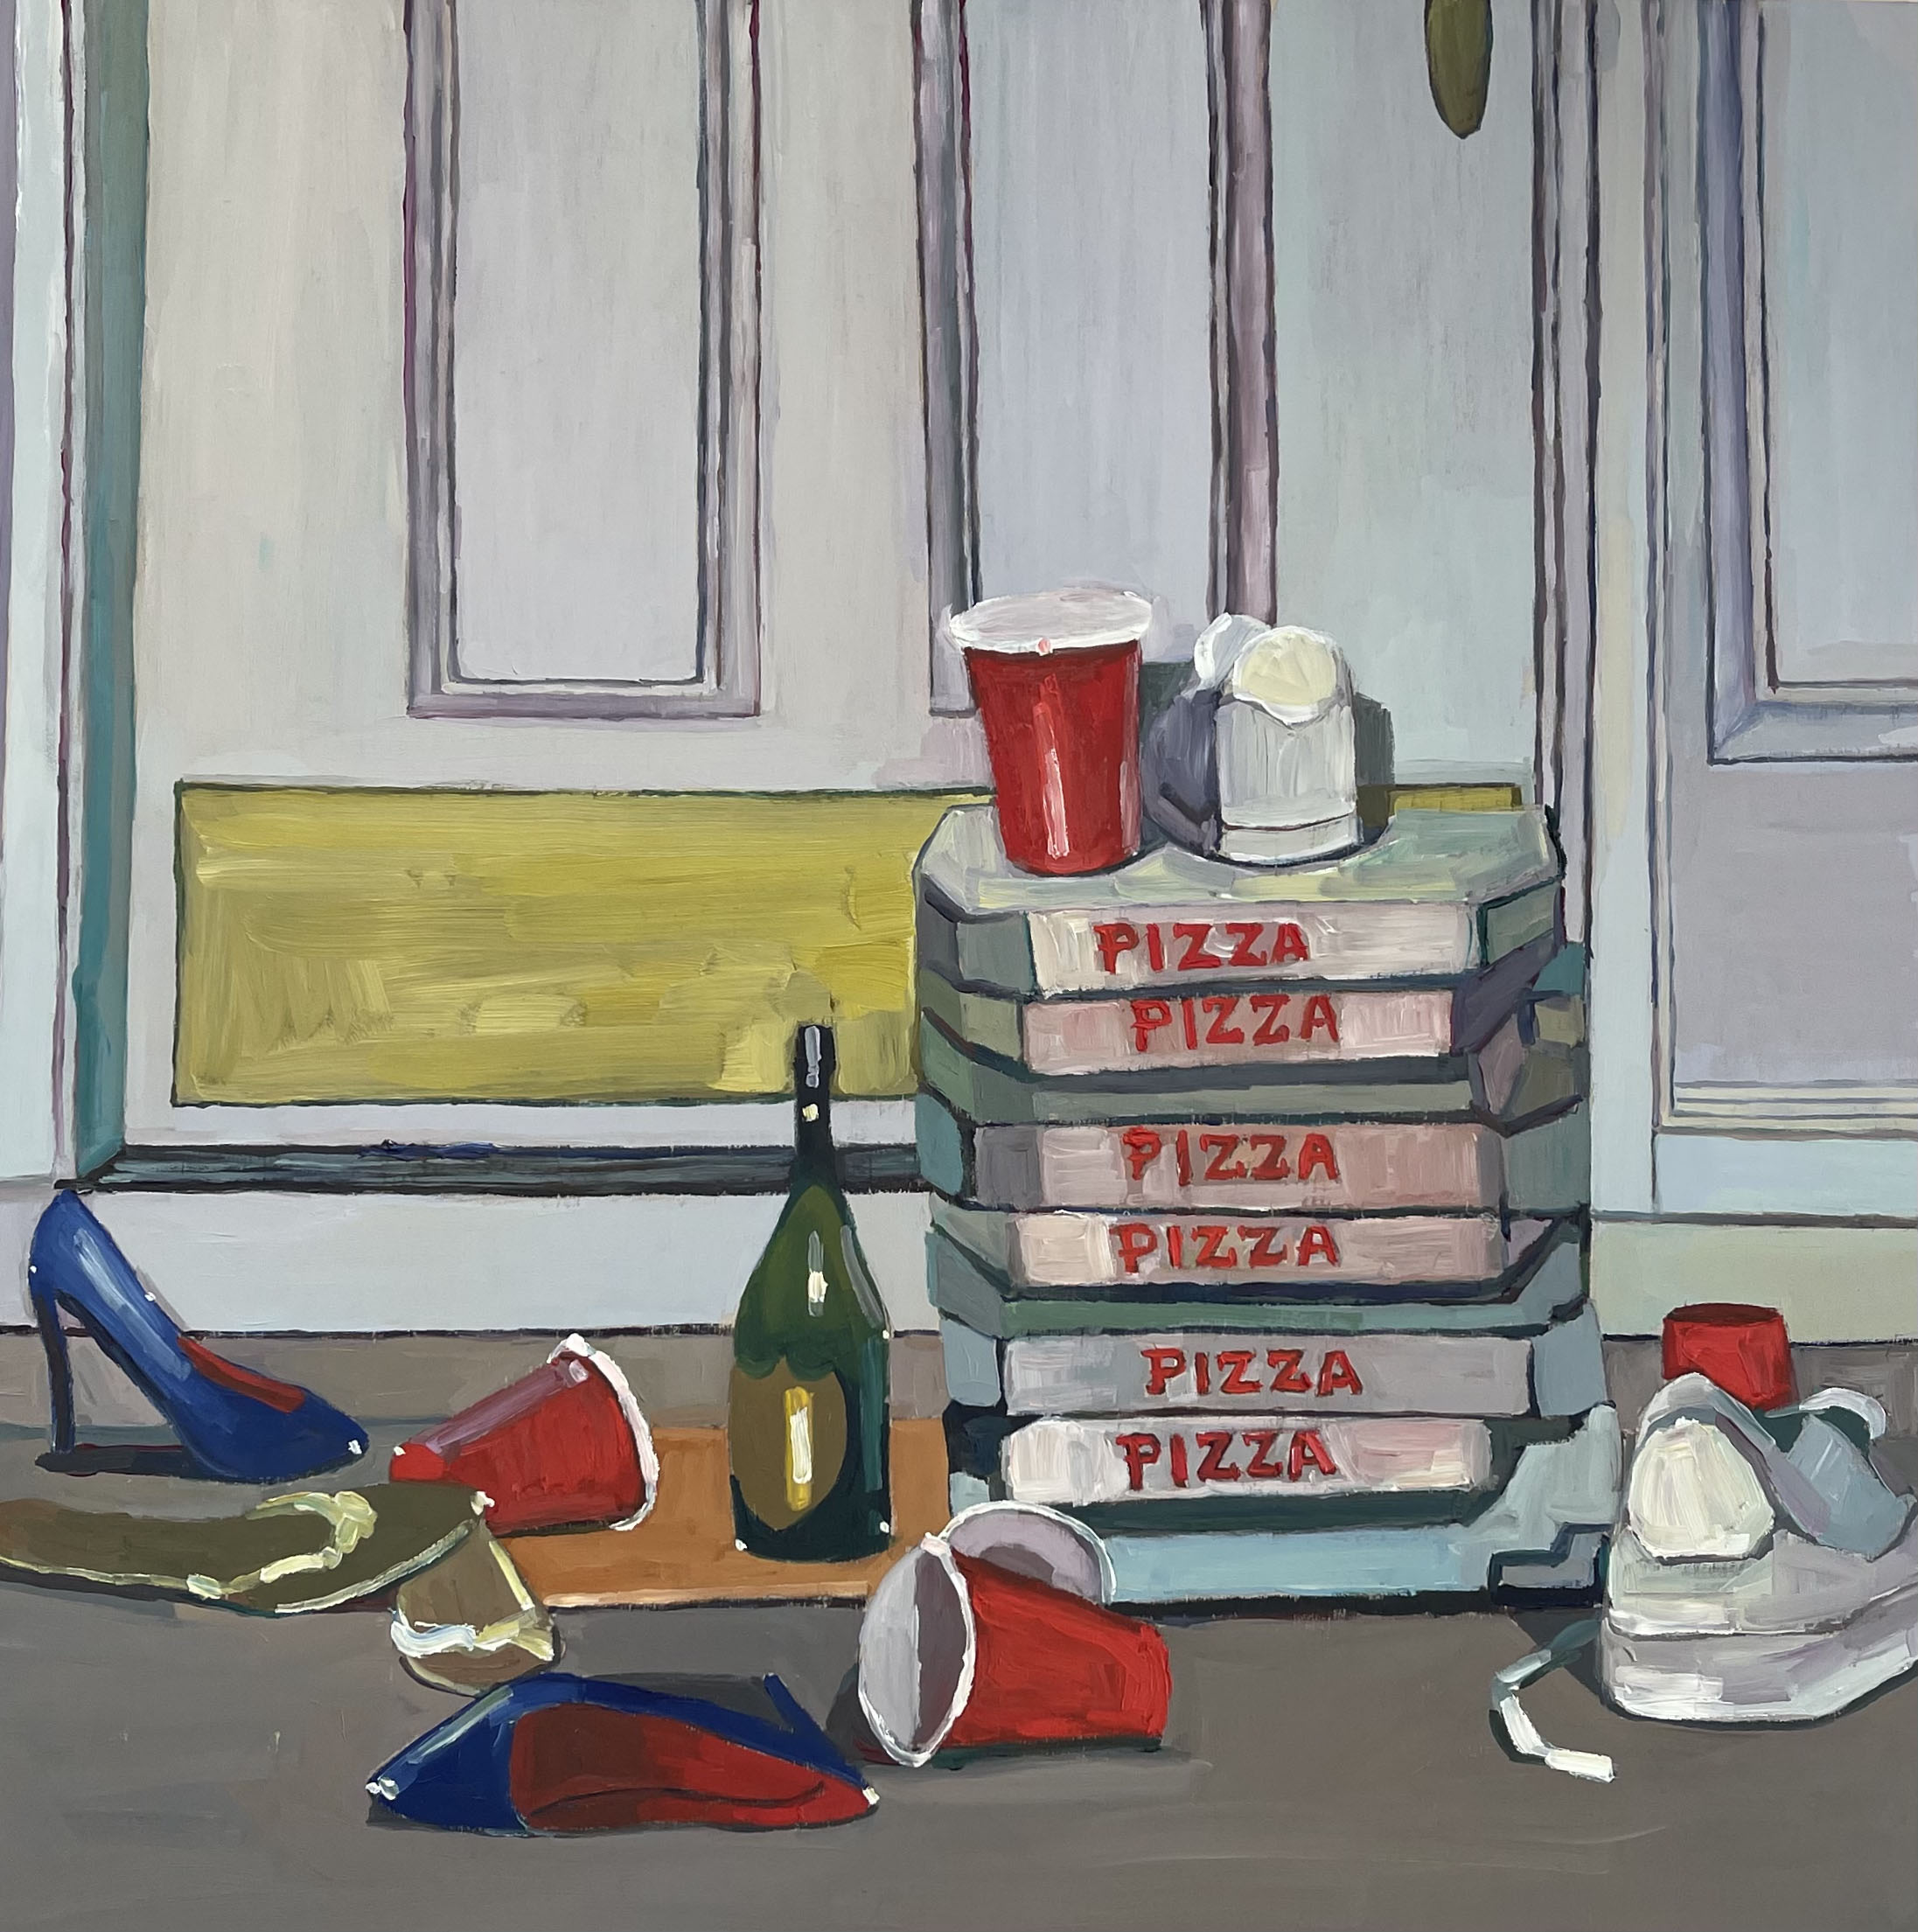 The Morning After by Erika Lee Sears